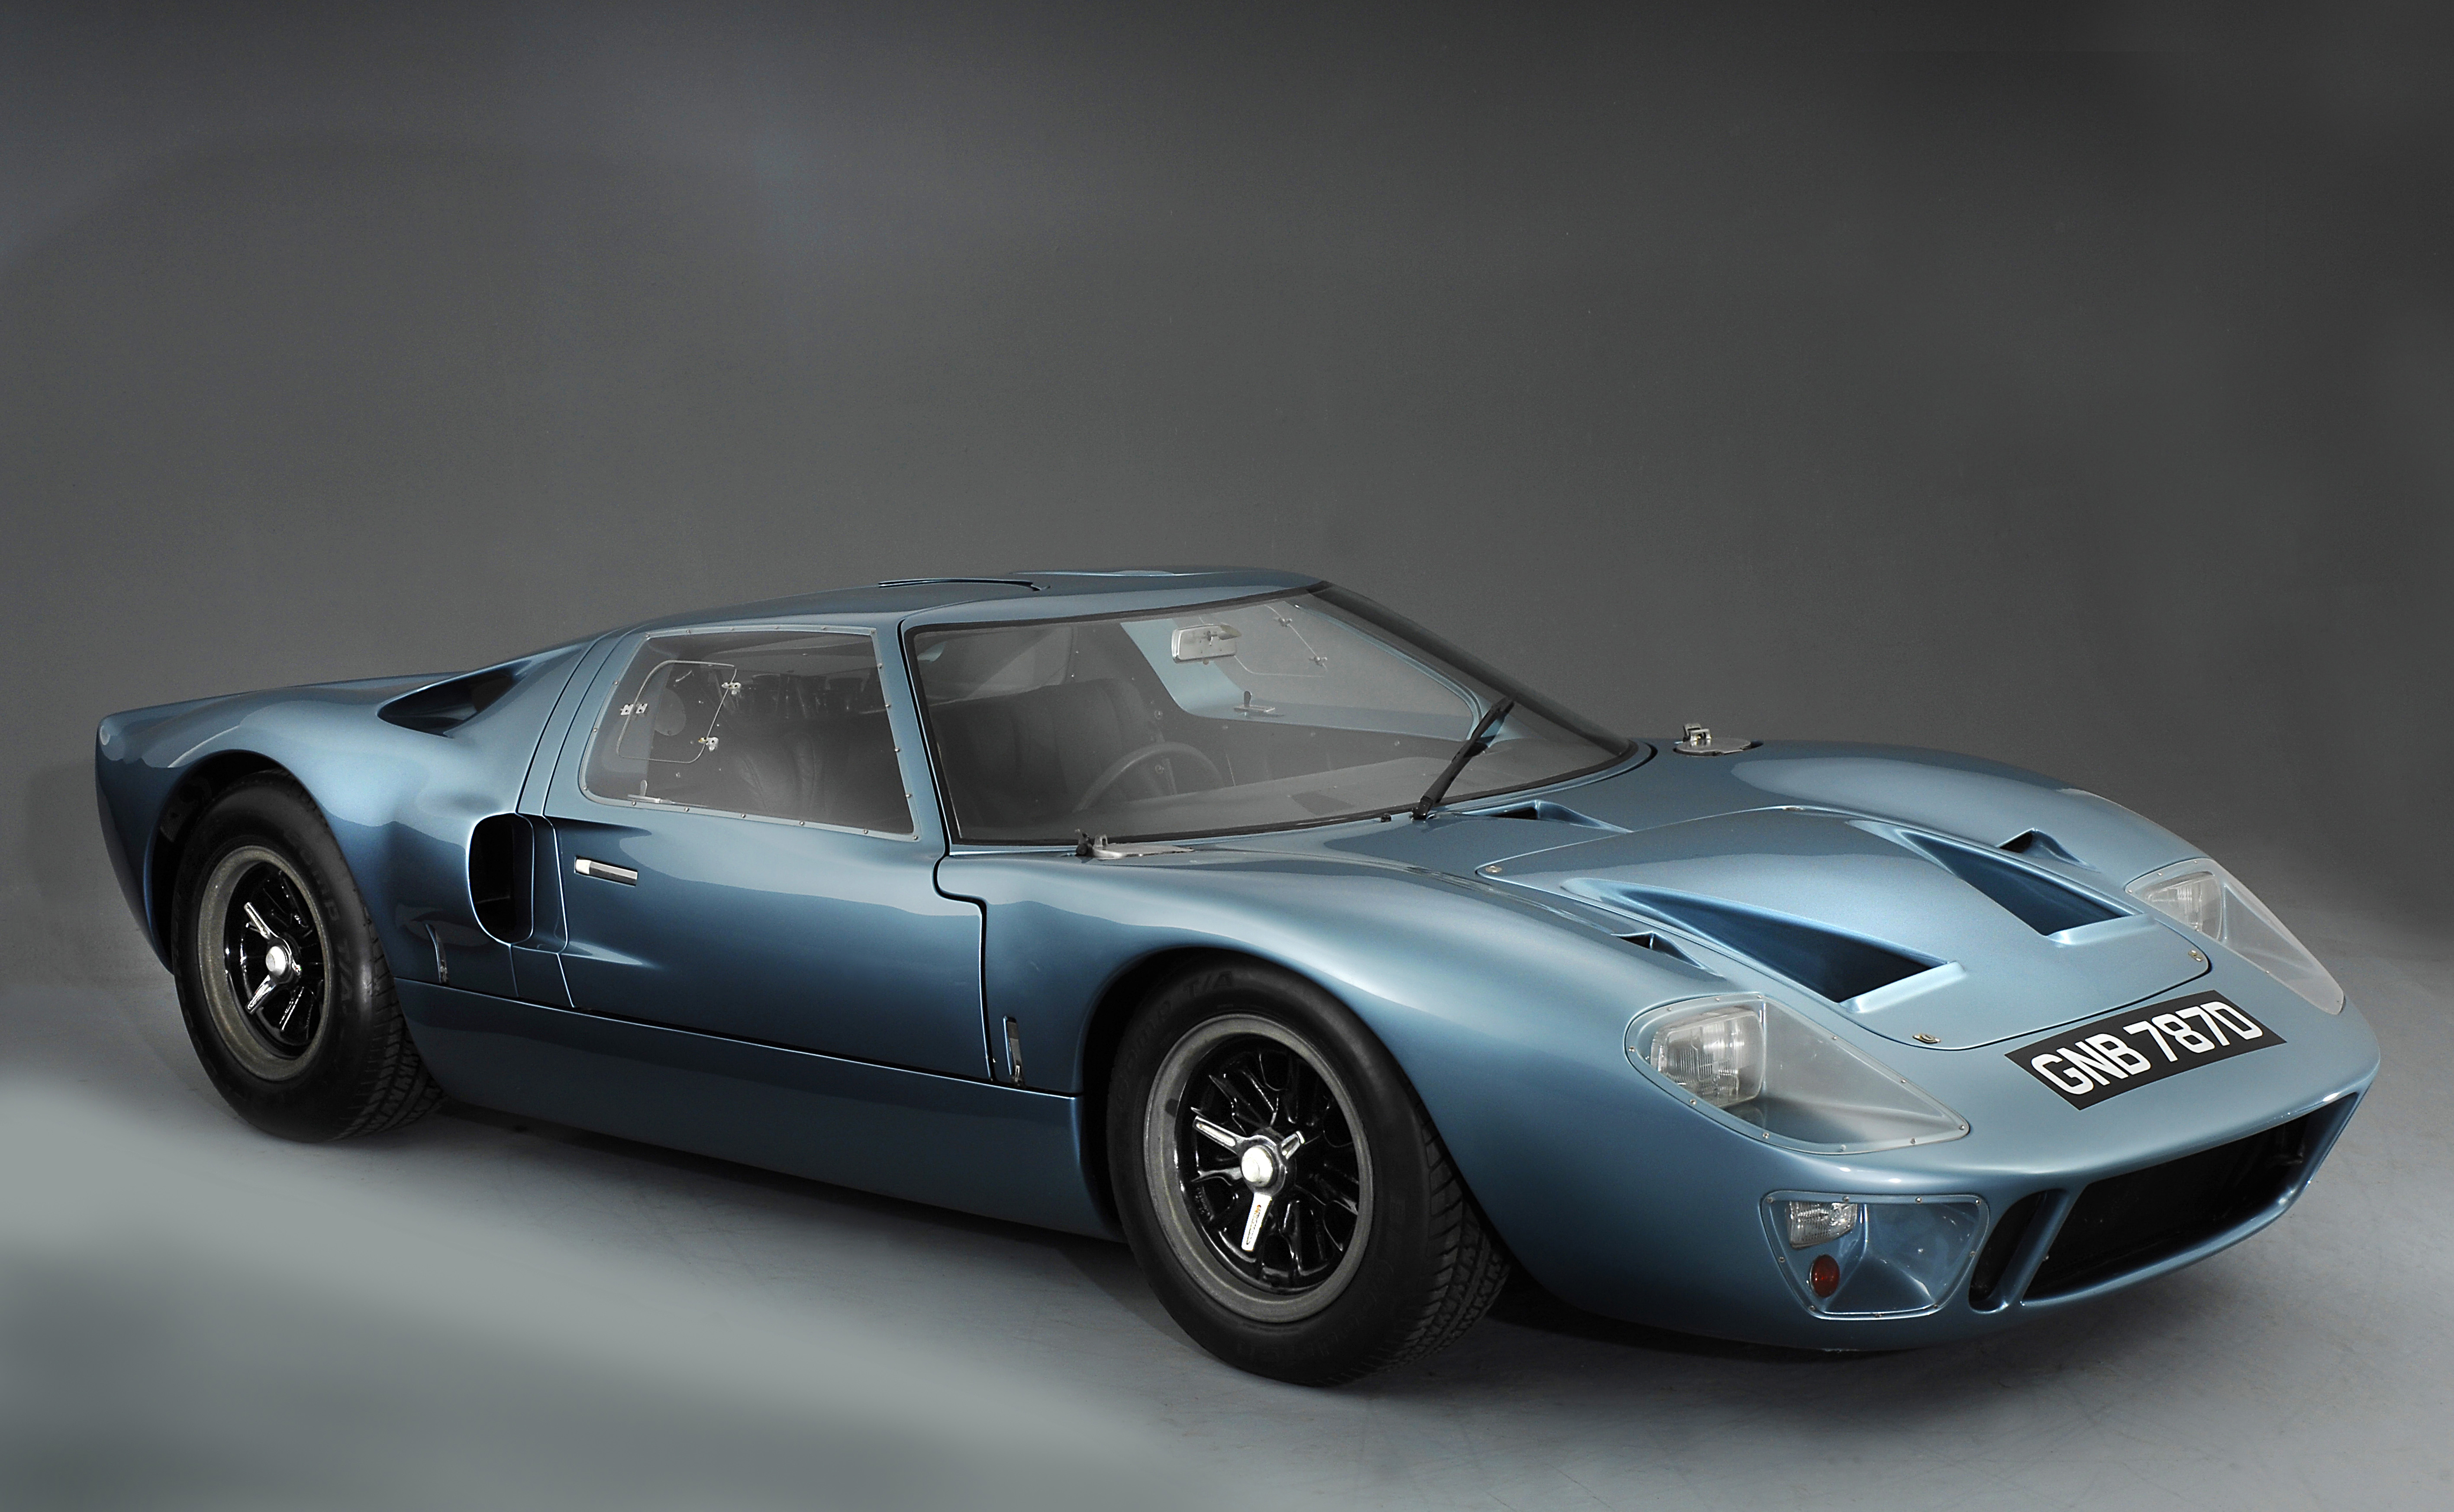 1966 Ford GT40. Artist: Unknown. (Photo by National Motor Museum/Heritage Images/Getty Images)